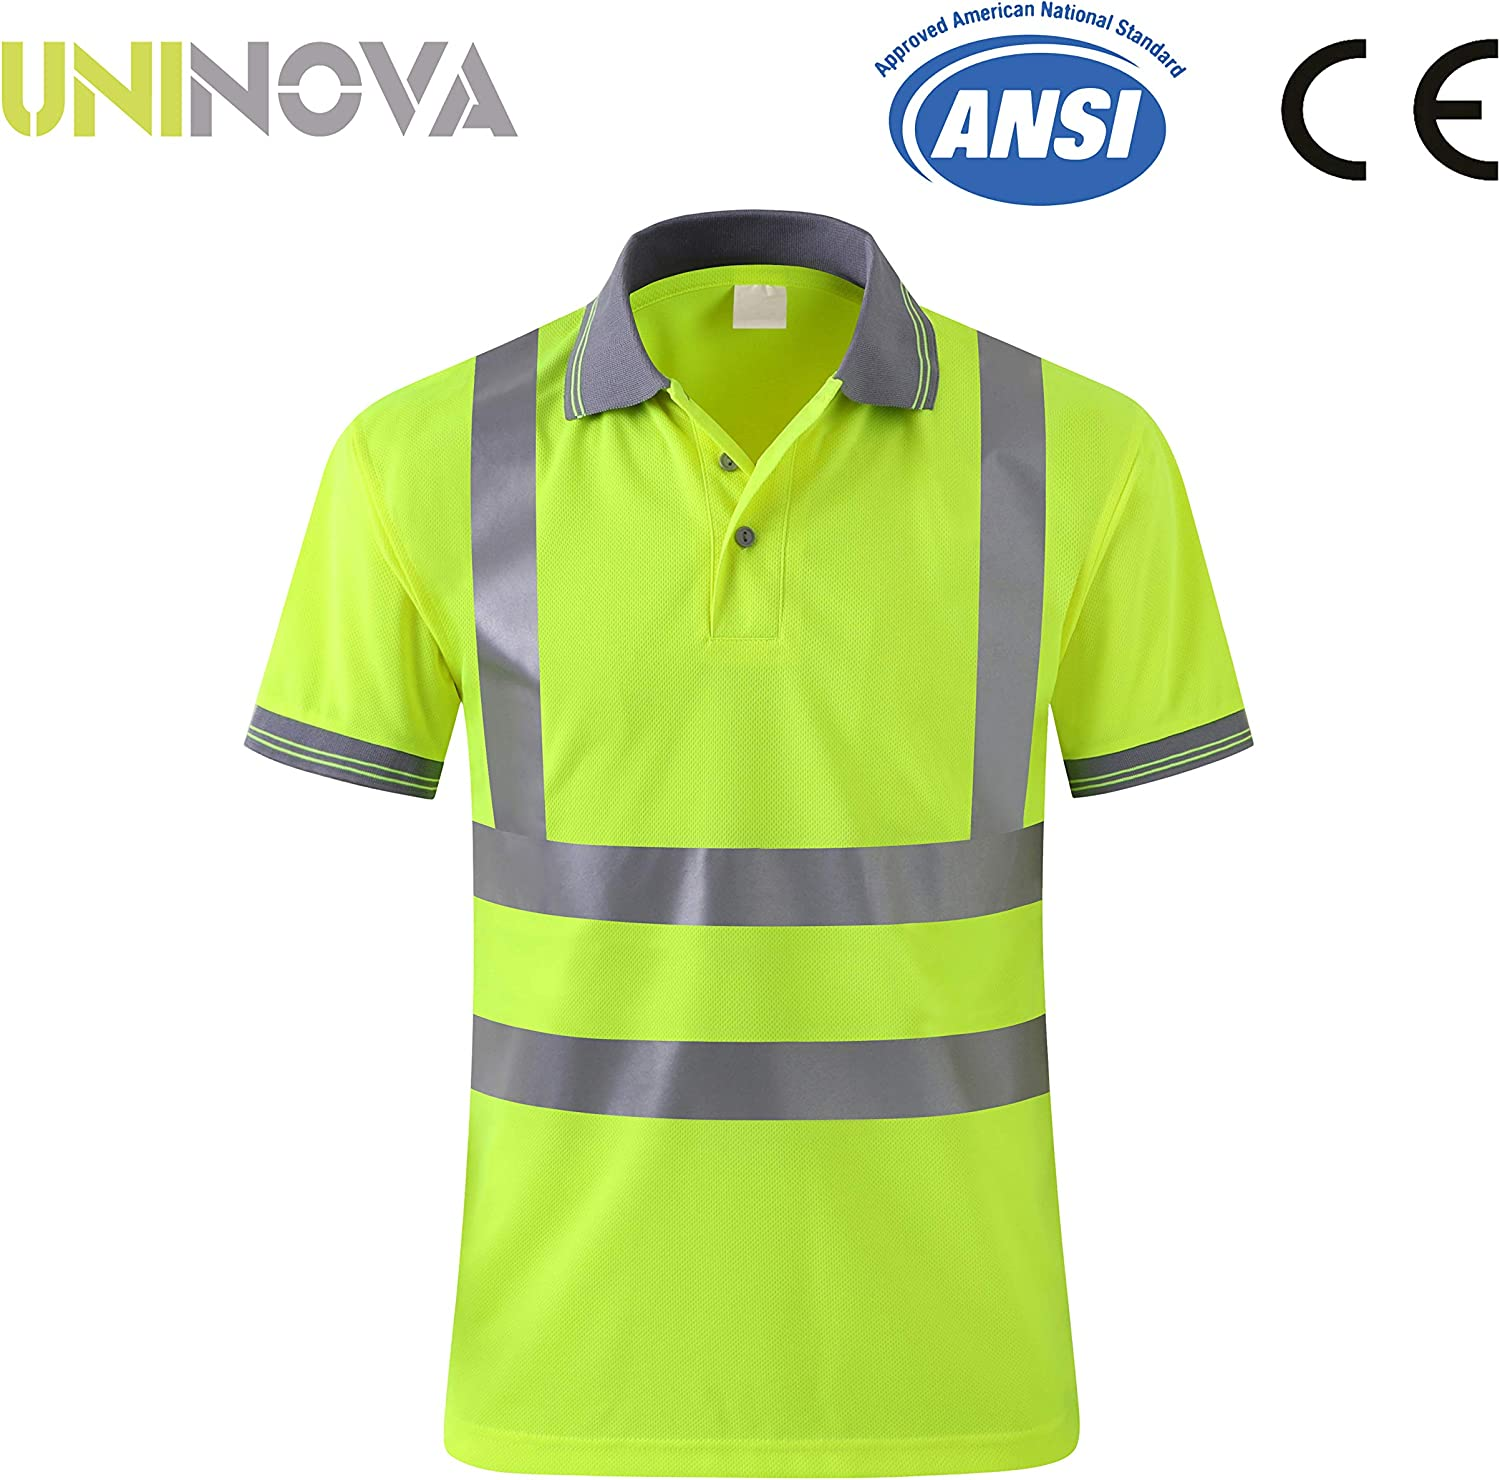 ZUJA Safety Long Sleeve T-Shirt Reflective Stripes Hi-vis Yellow Knitted Polo Bright Construction Workwear for Men and Women.